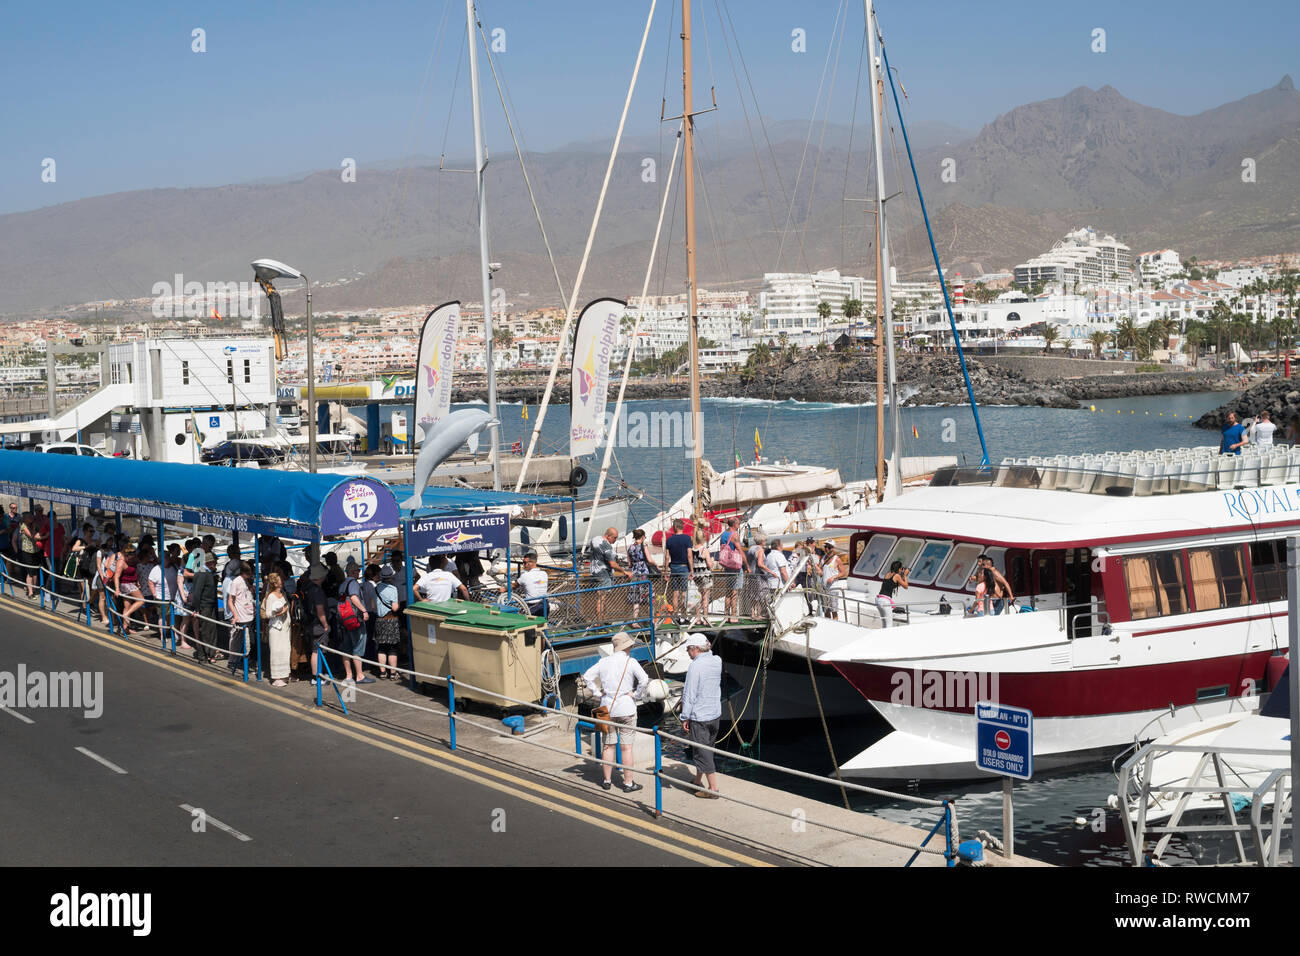 Tourists queuing to board the Royal Delphin catamaran Puerto Colon, Costa Adeje, Tenerife - Stock Image